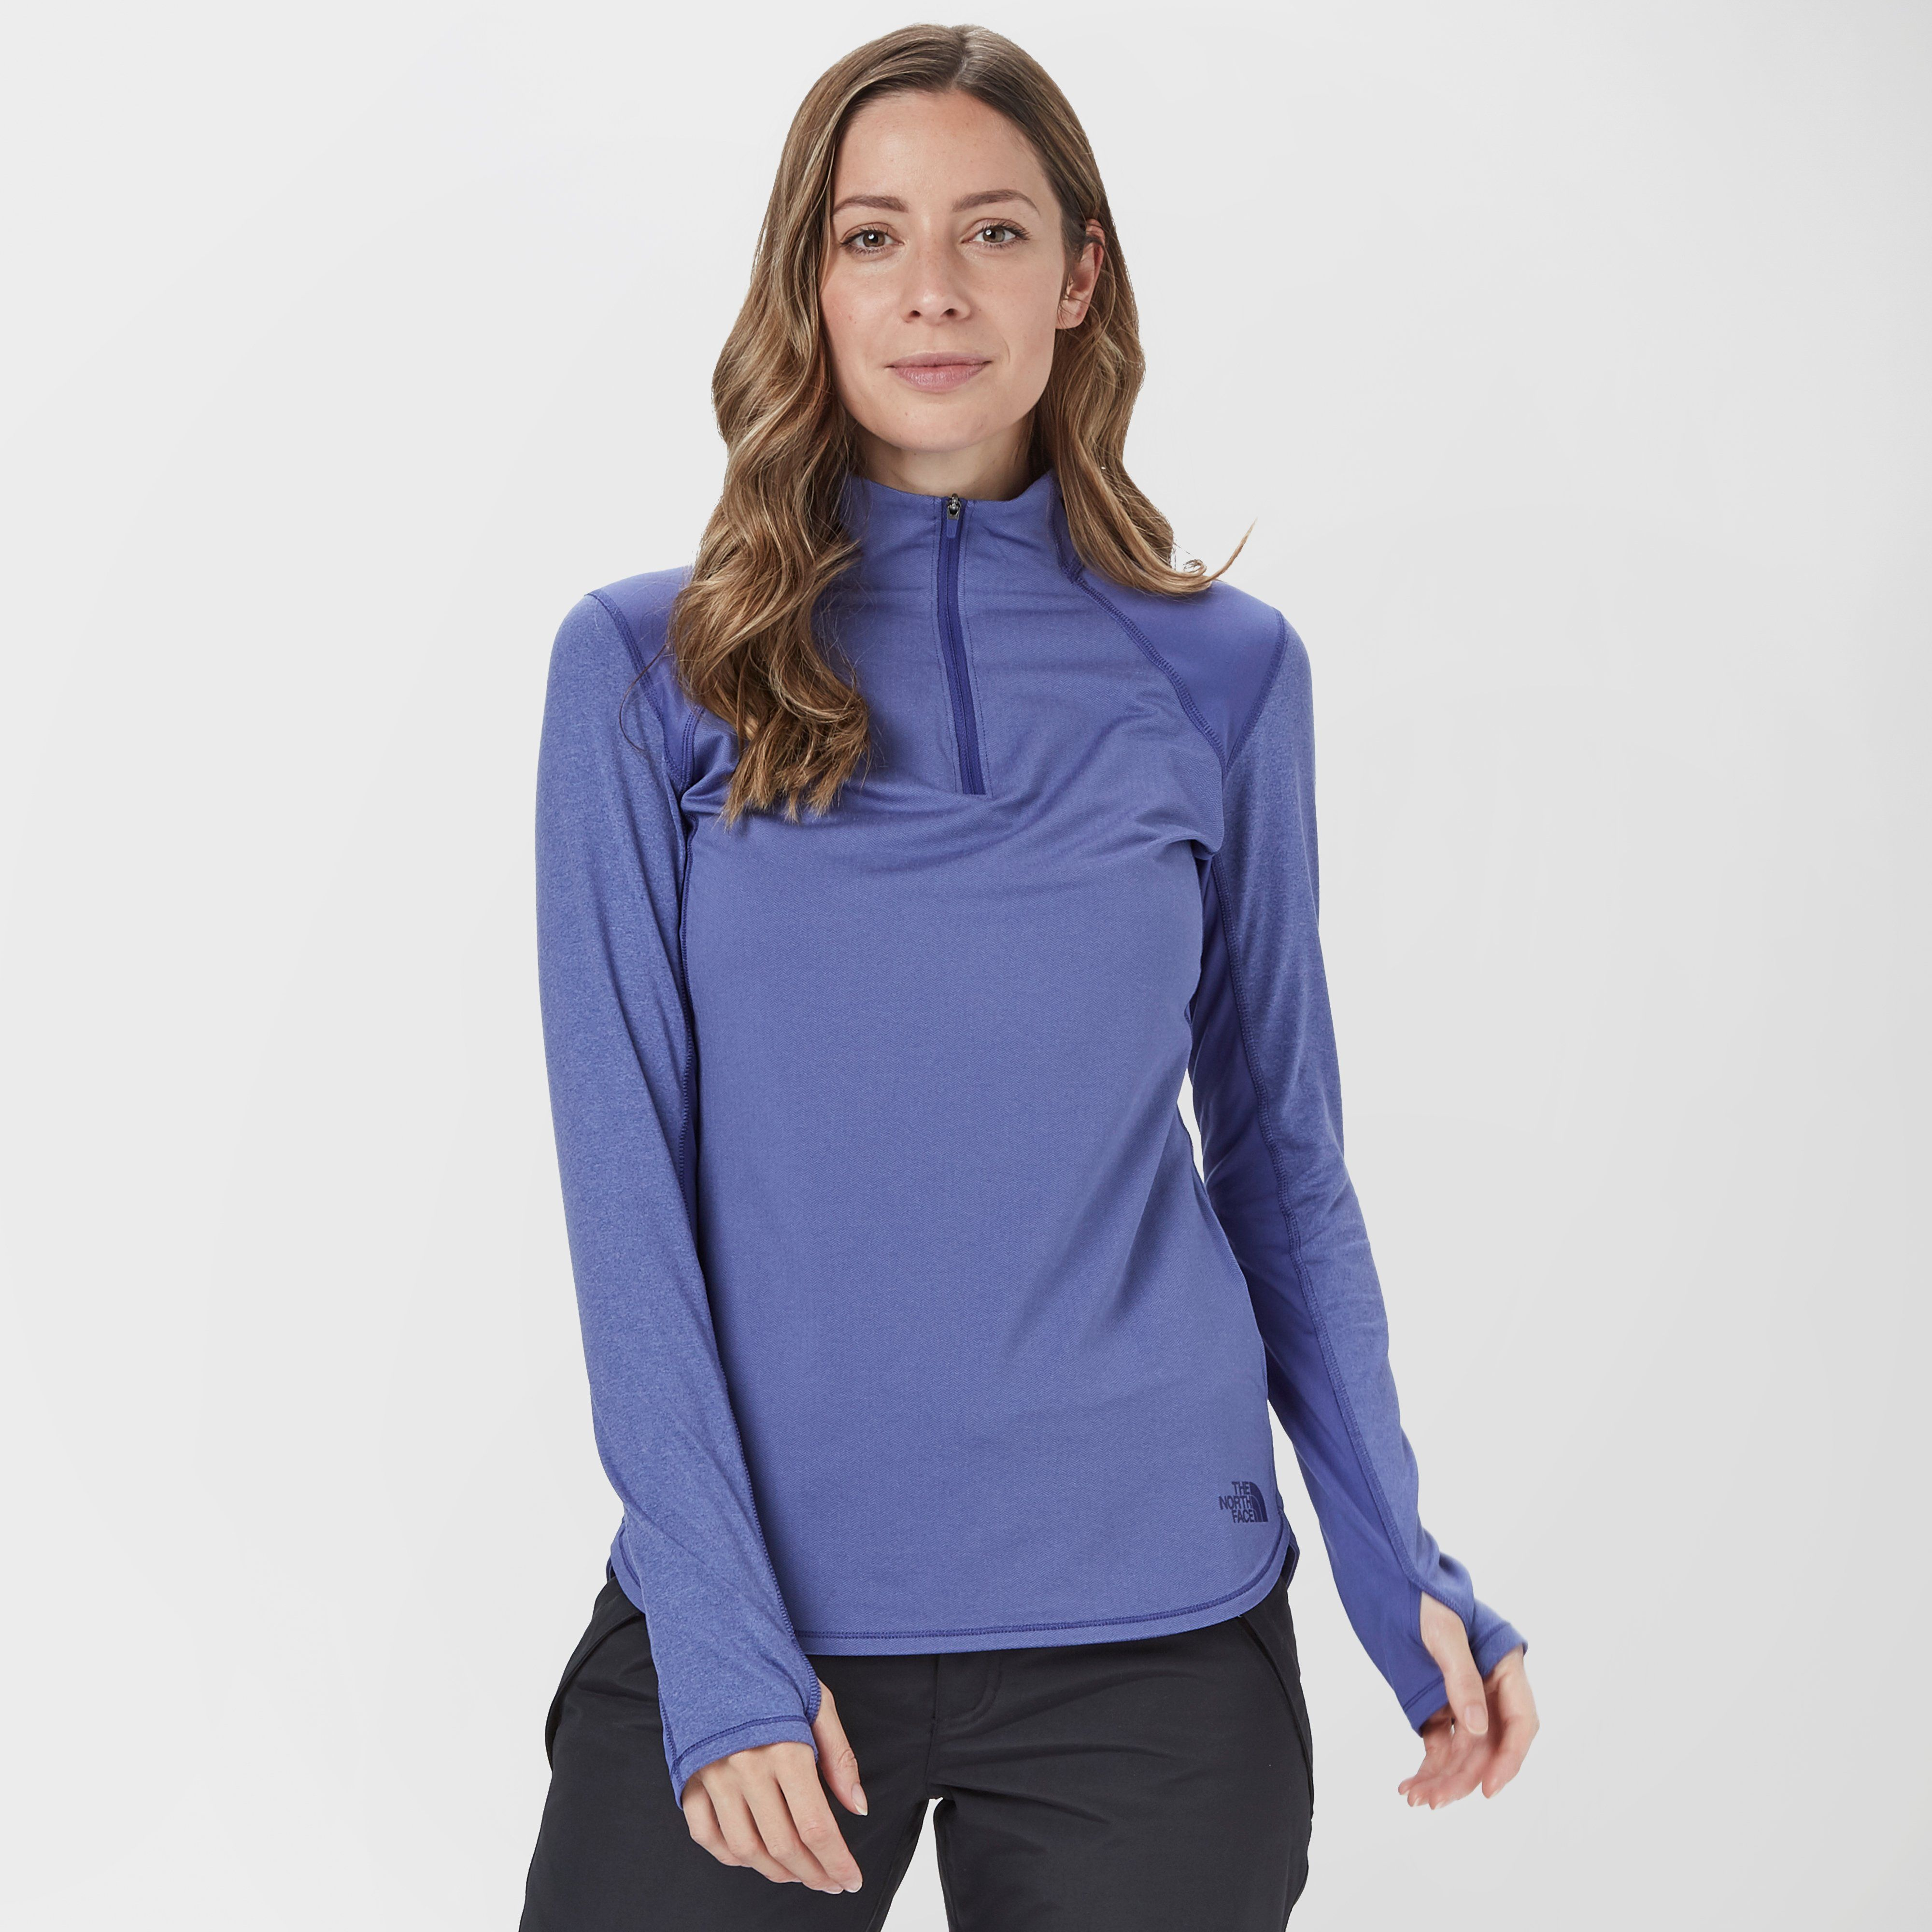 THE NORTH FACE Women's Mountain Athletics Motivation Quarter Zip Fleece